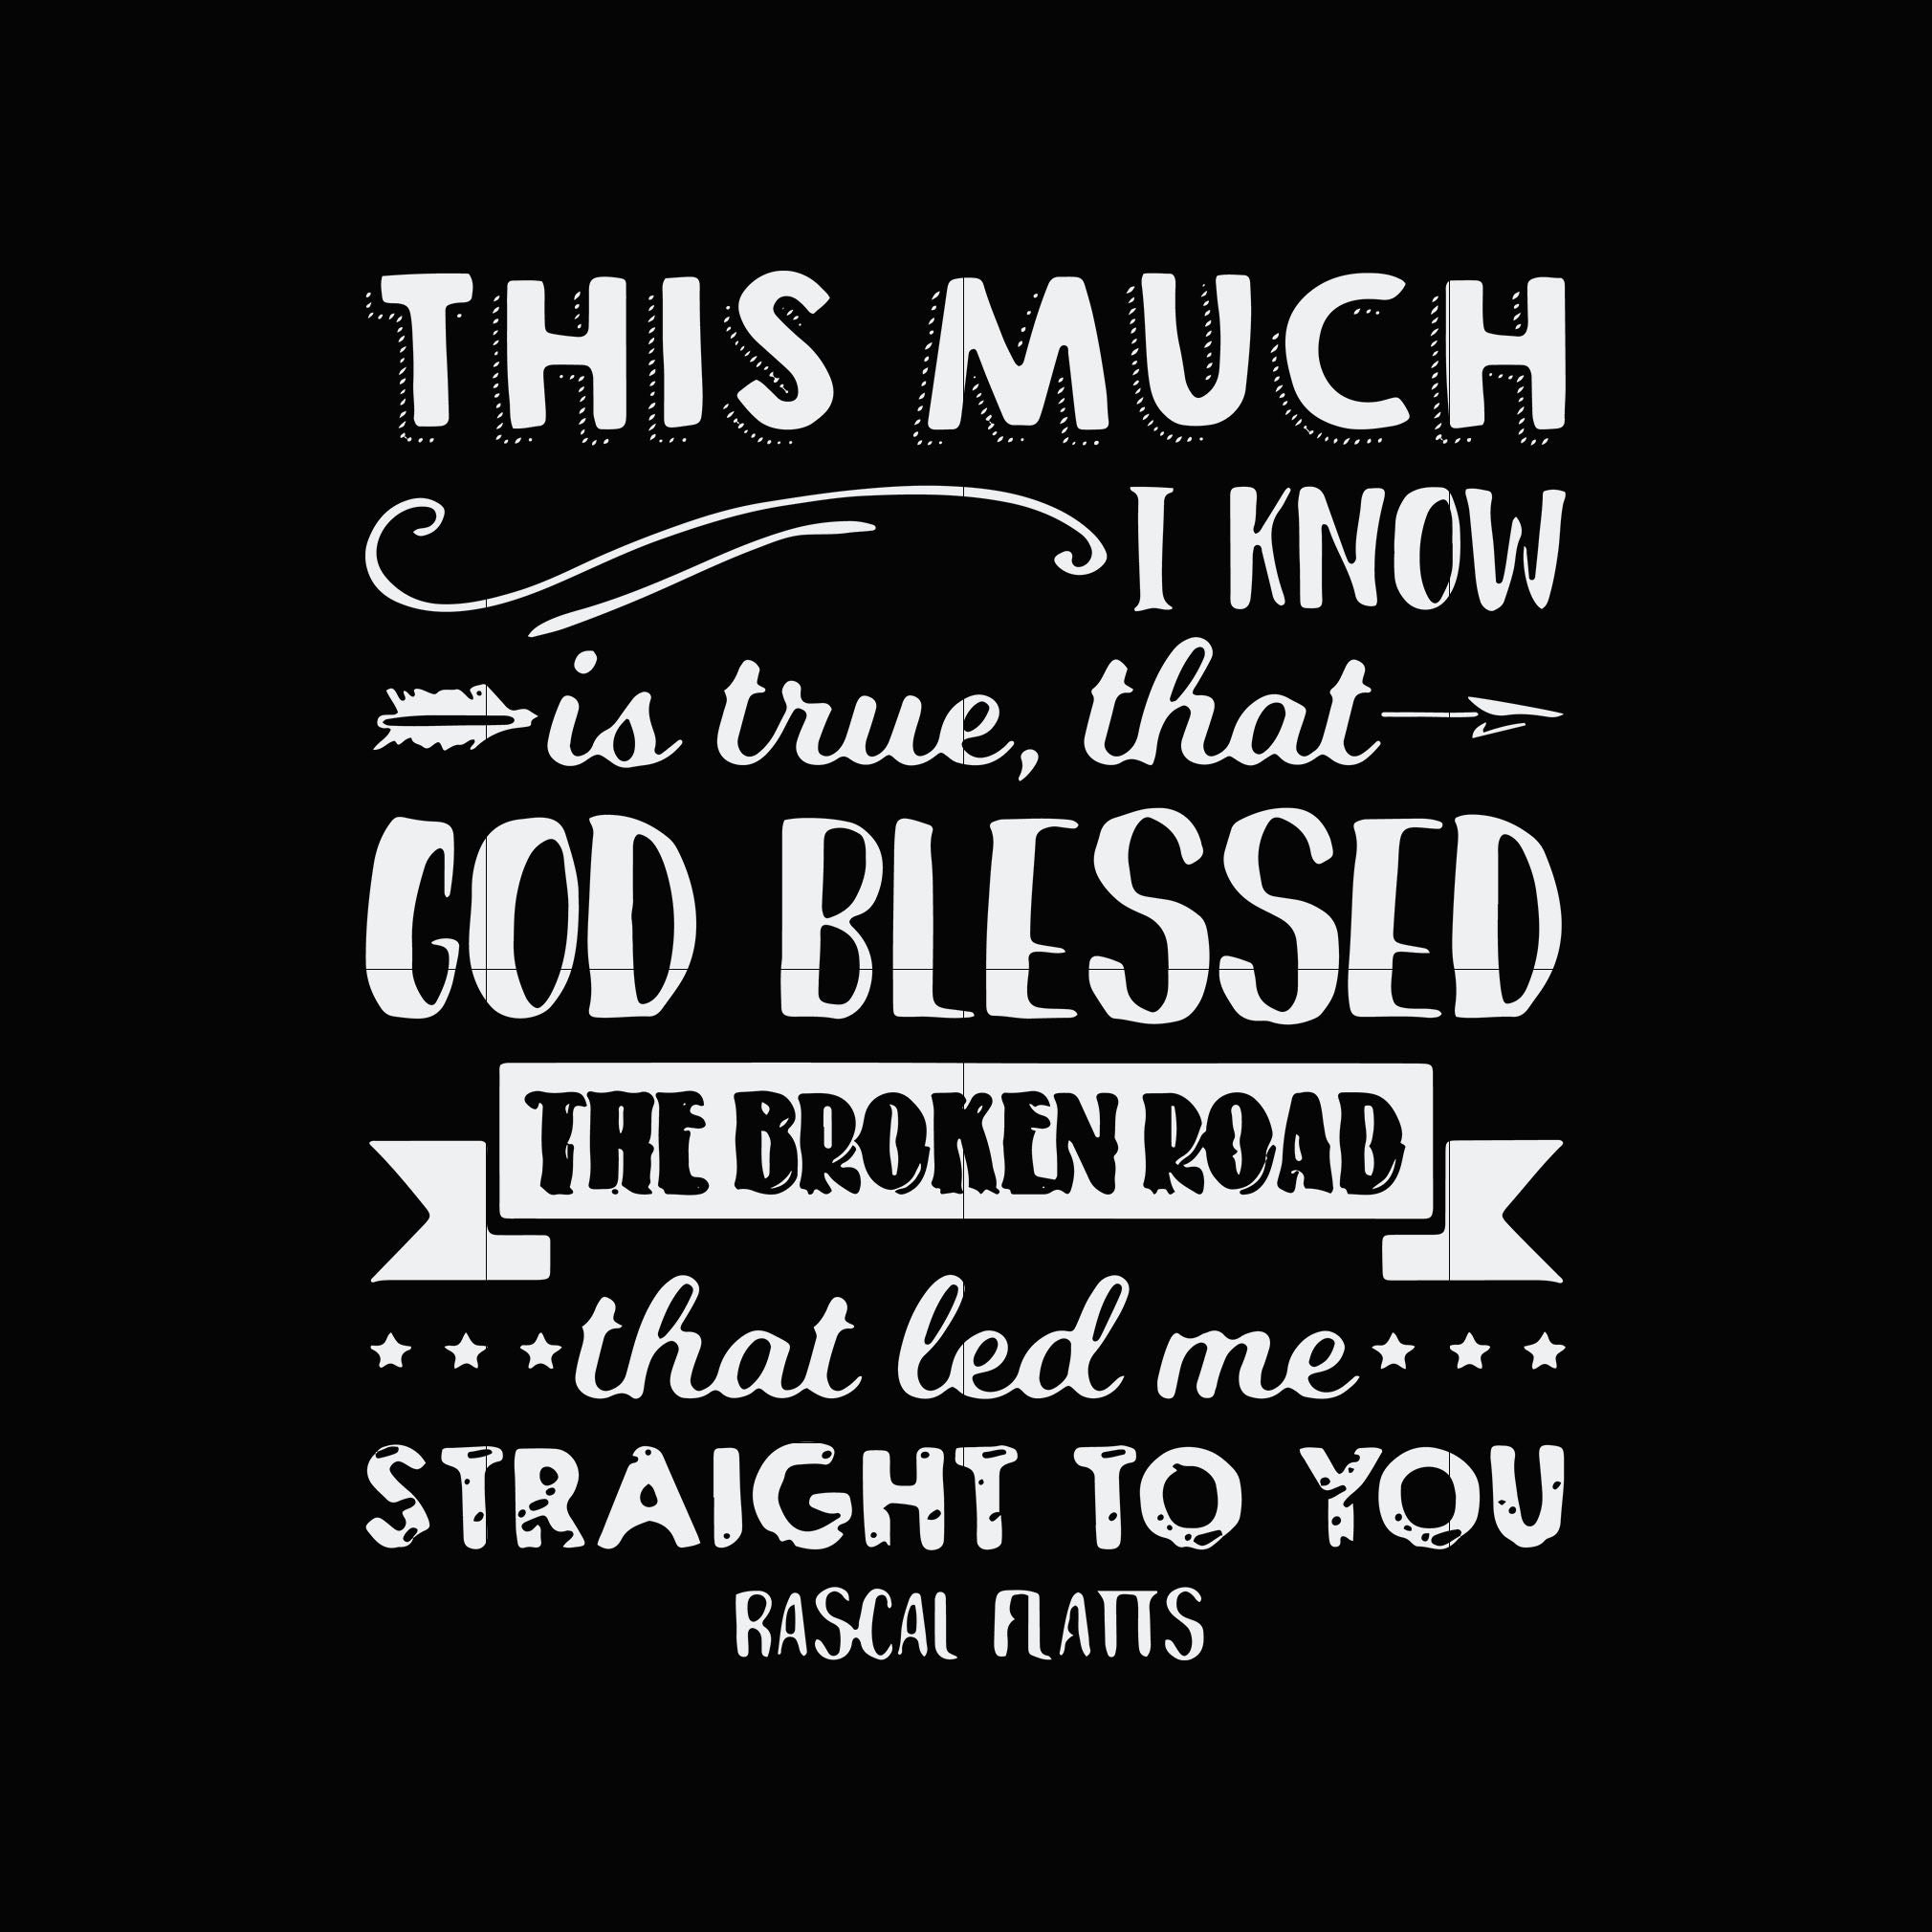 This much i know is true that god blessed the broken road that led me straight to you svg,dxf,eps,png digital file